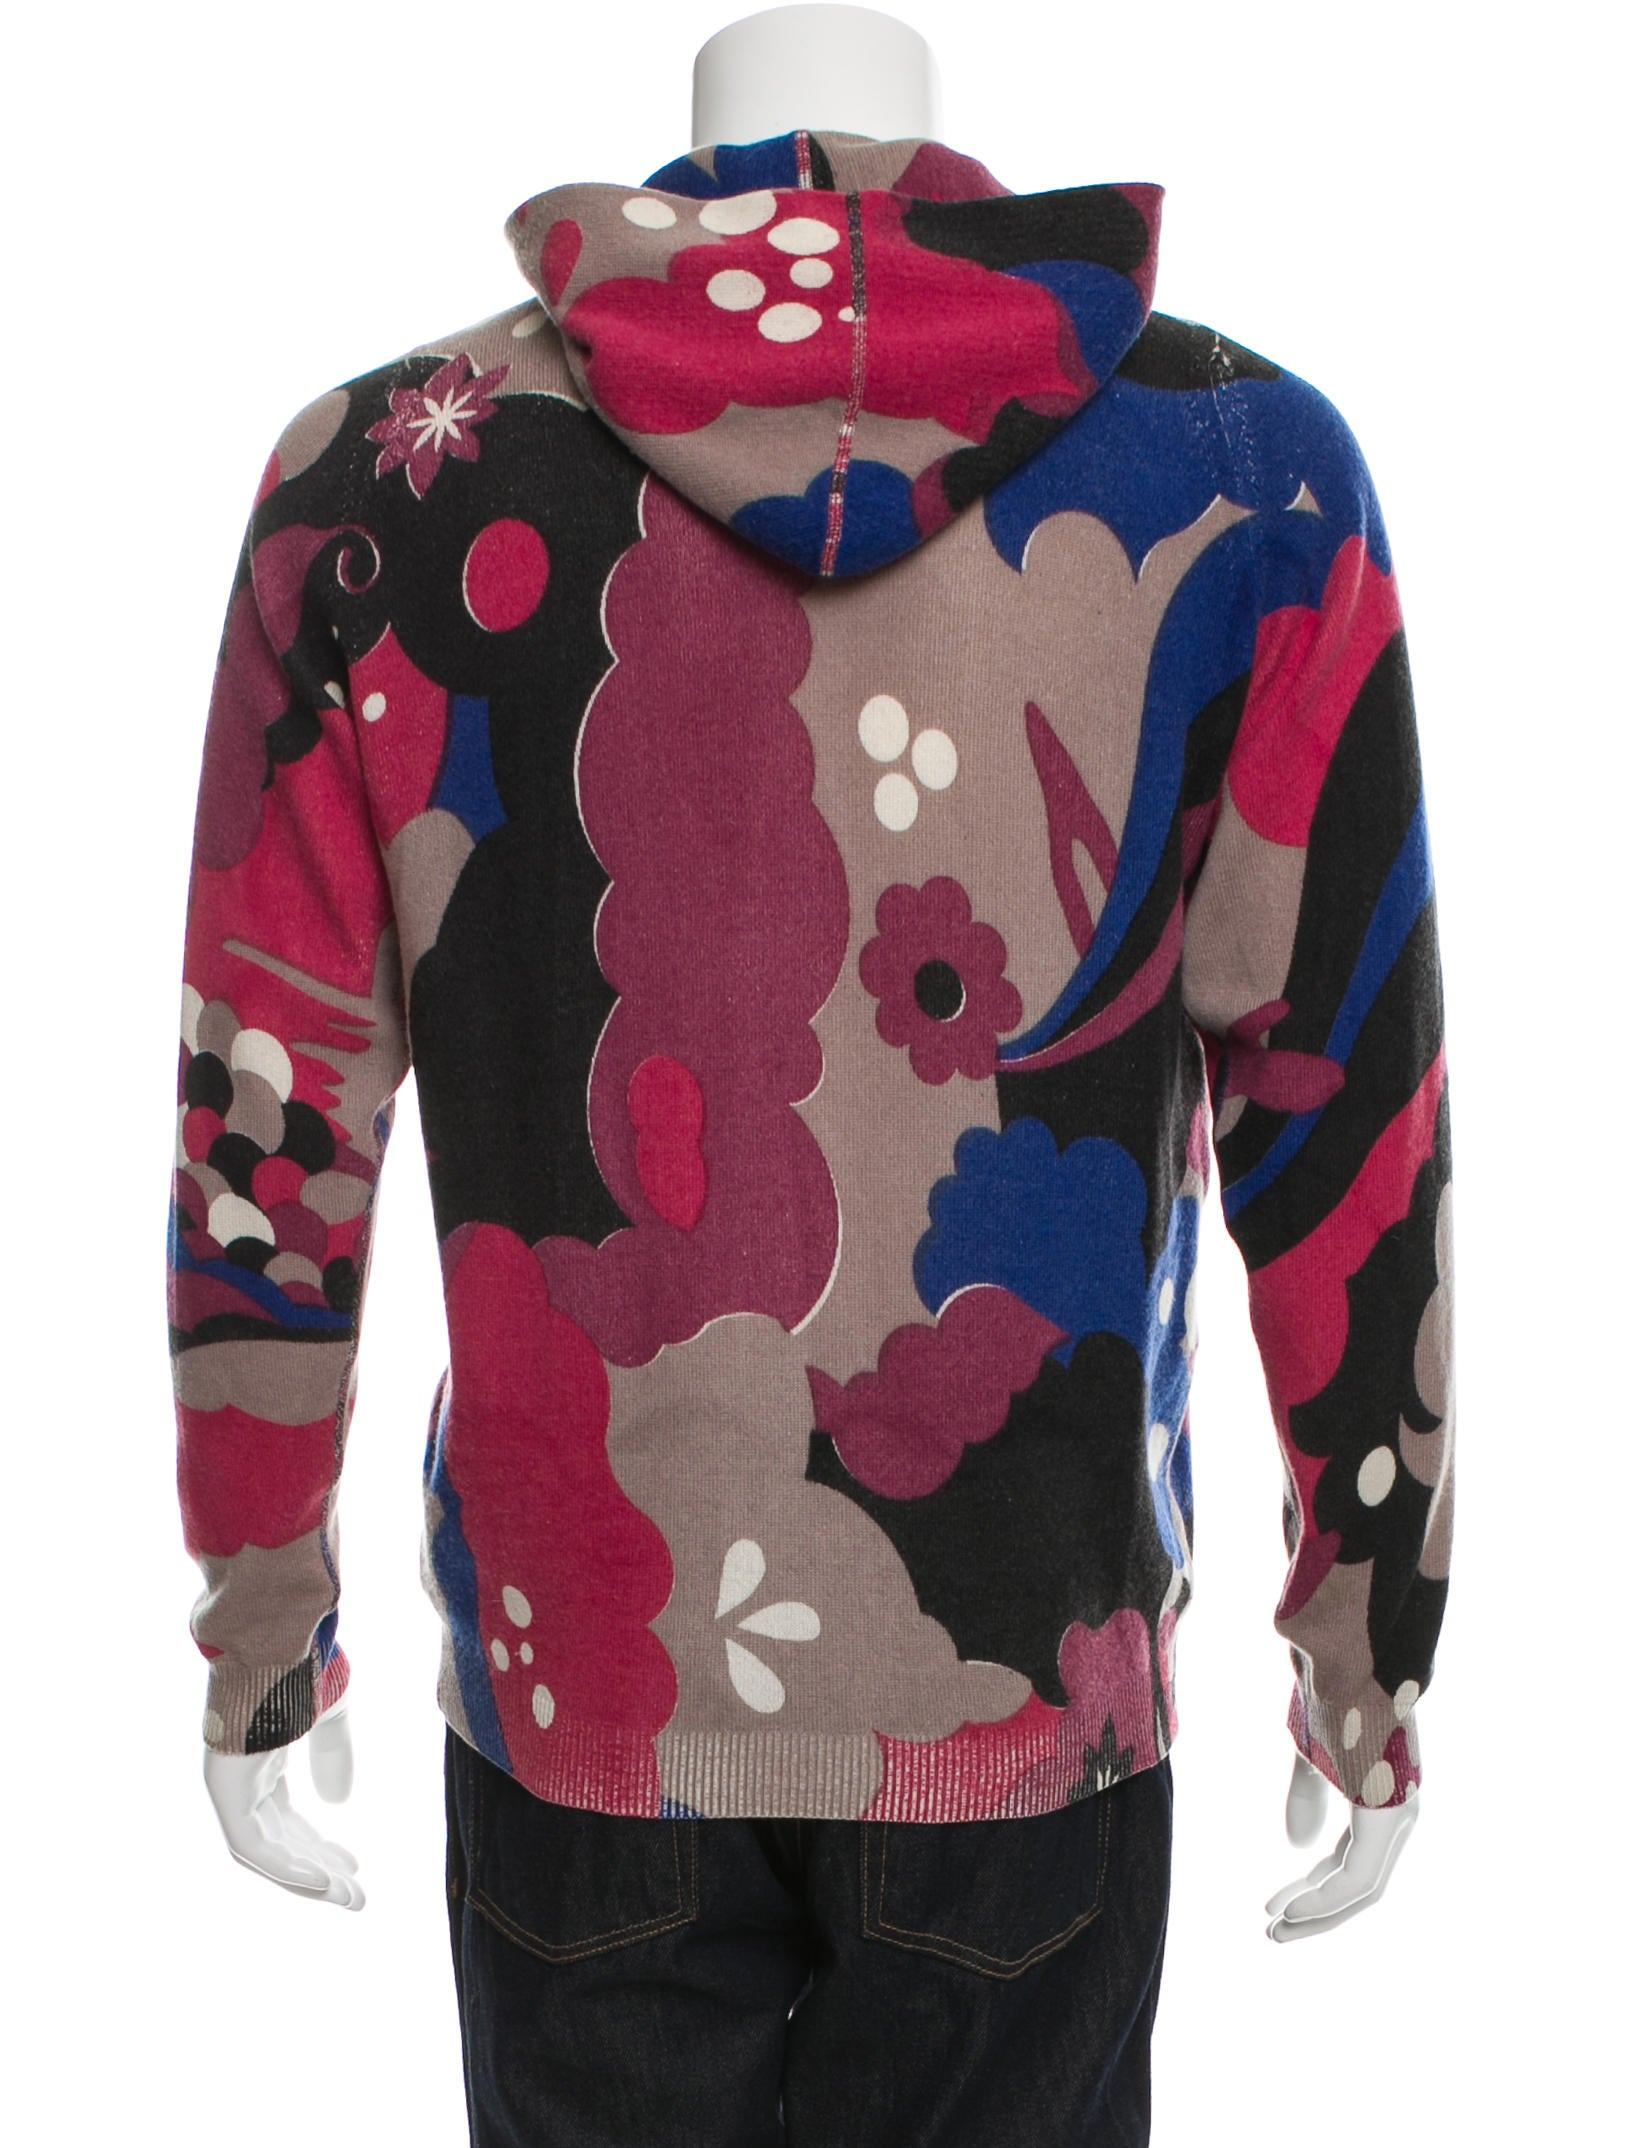 Lucien Pellat-Finet Patterned Cashmere Sweater - Clothing ...